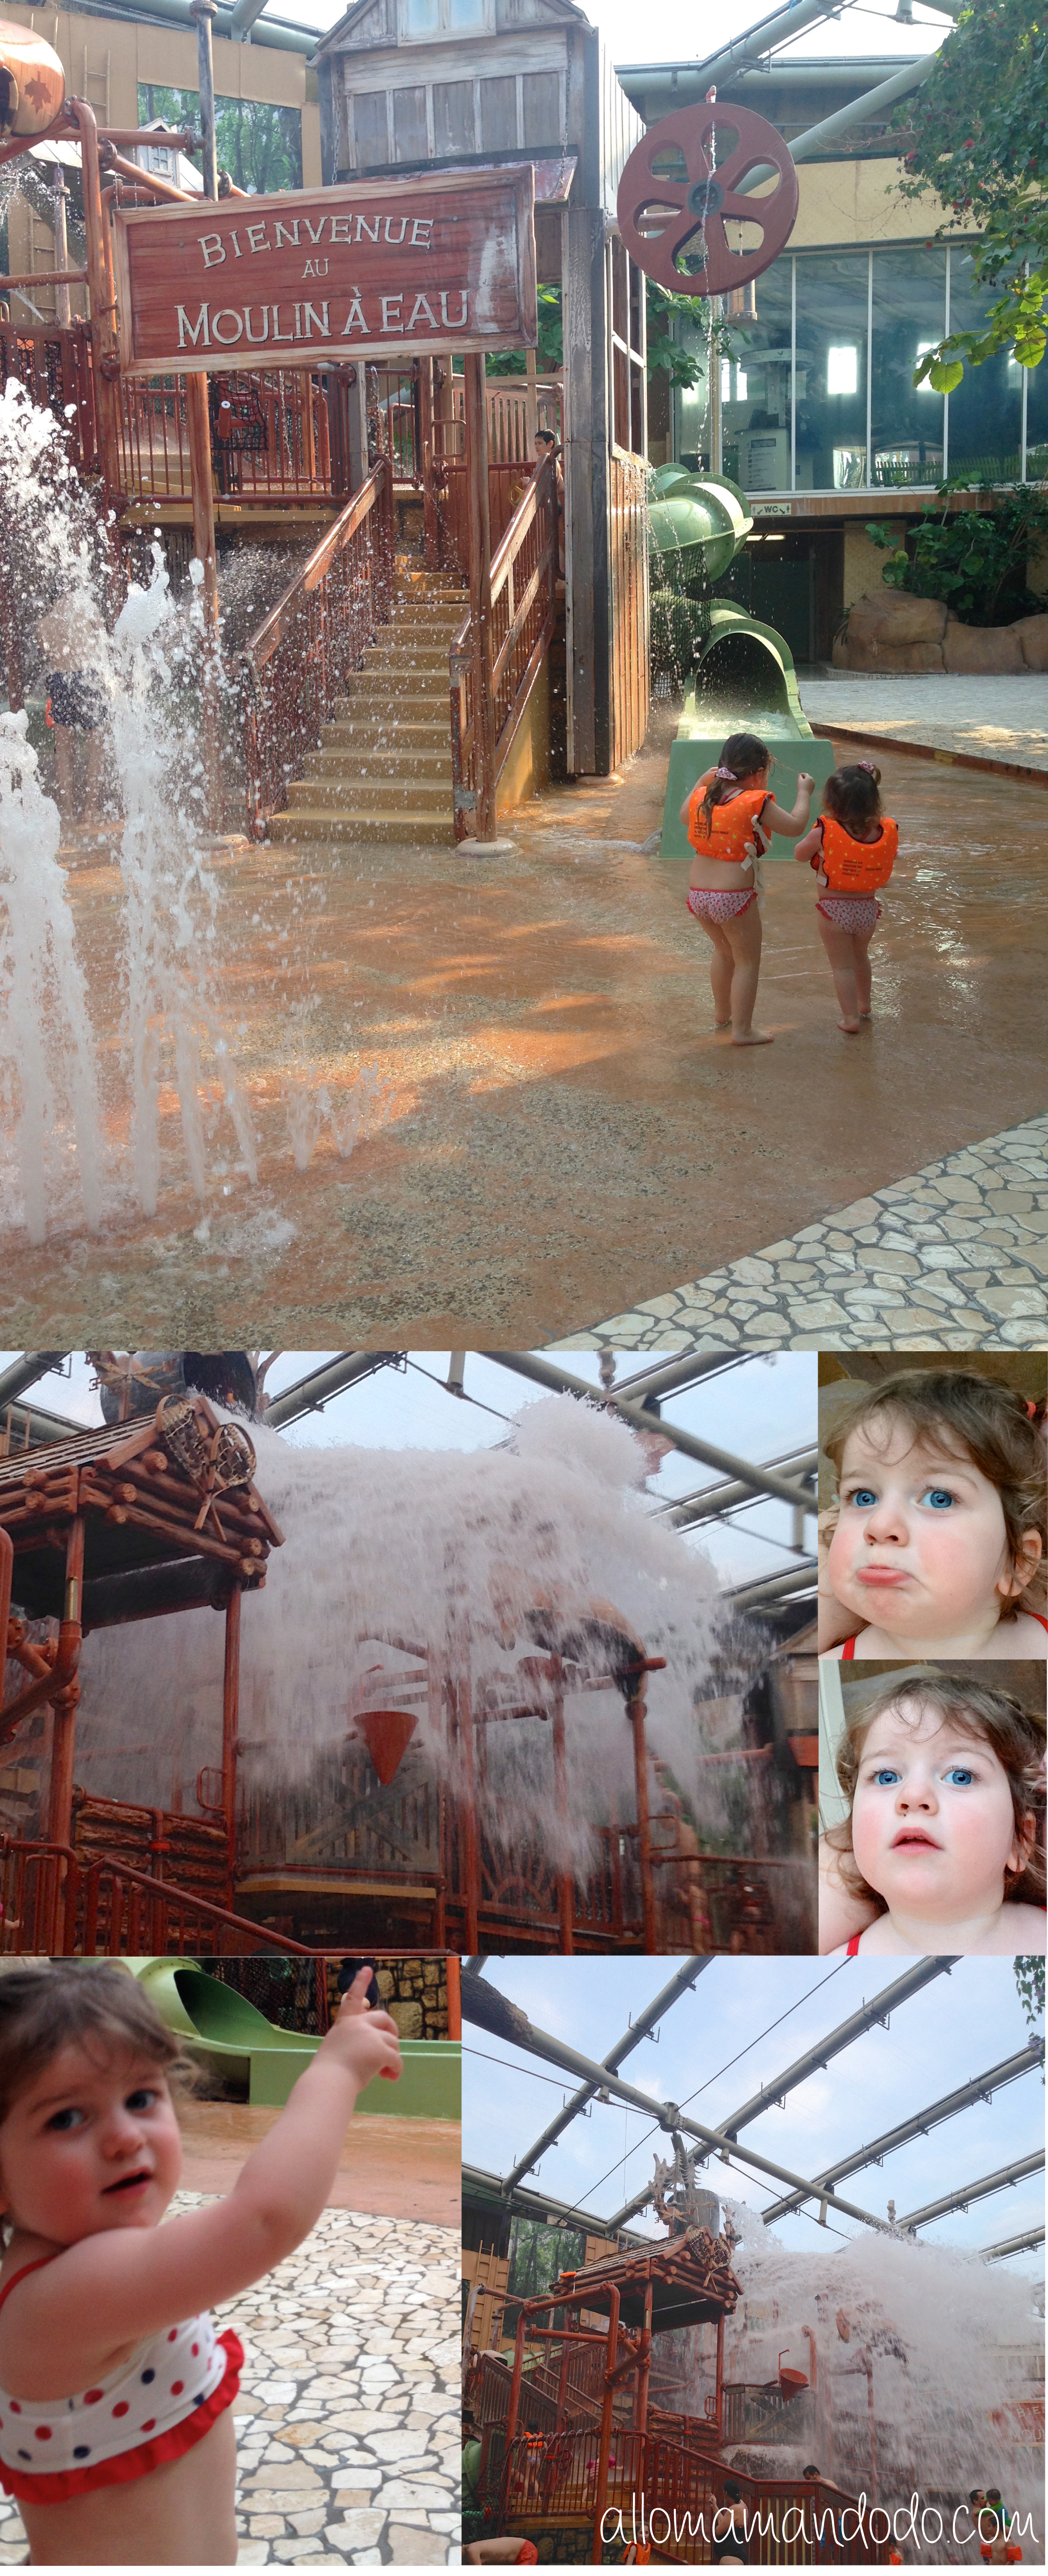 Les 10 bonnes raisons d 39 aller center parcs en famille for Piscine center parc